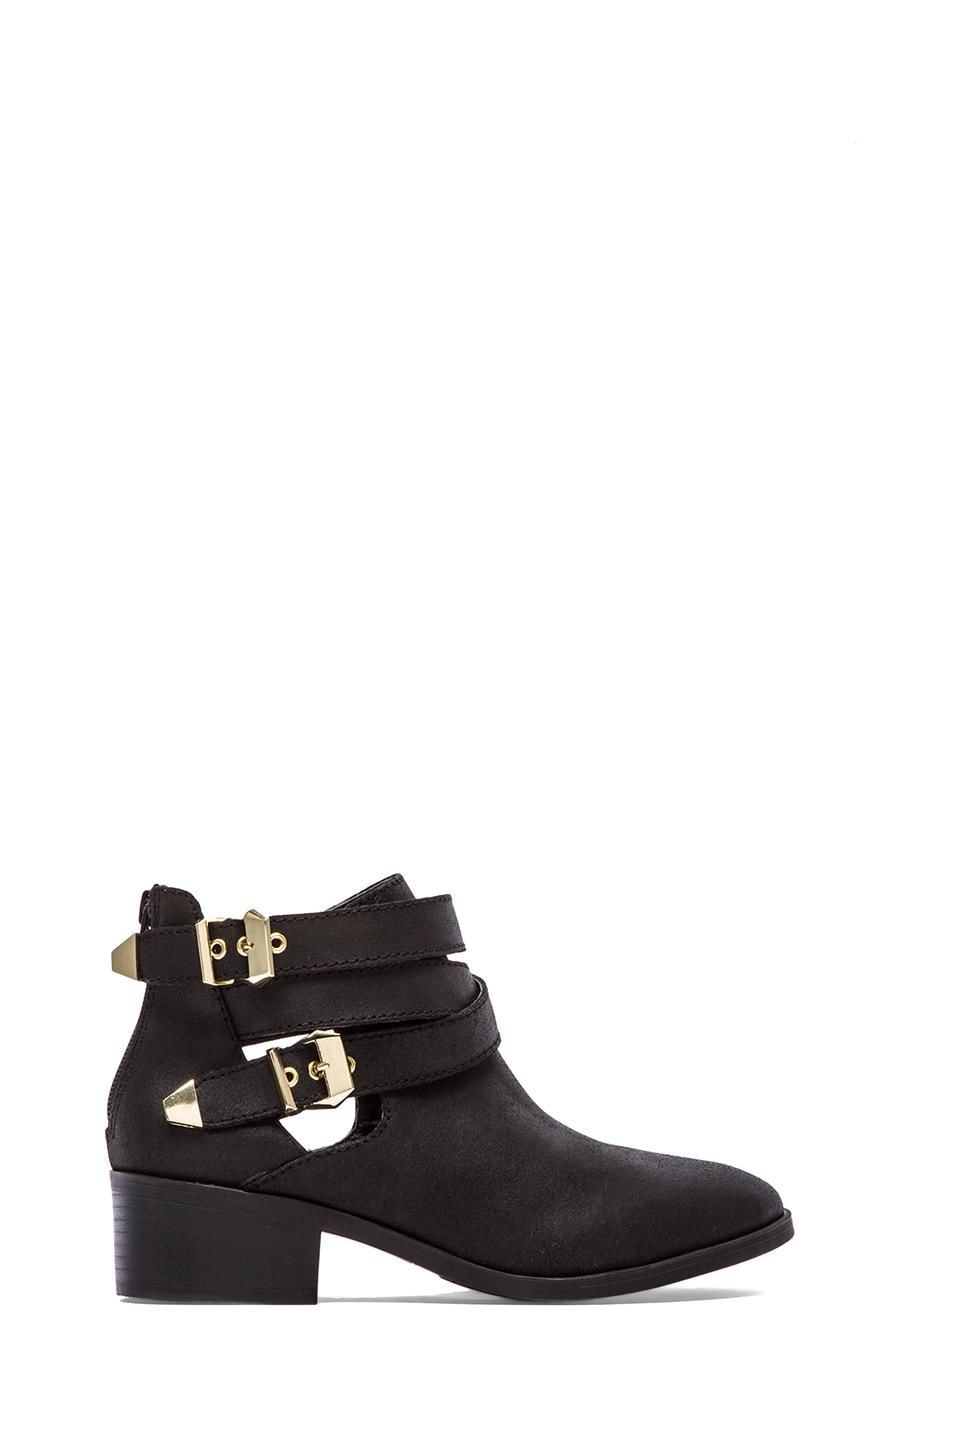 Seychelles Scoundrel Bootie in Black Distressed